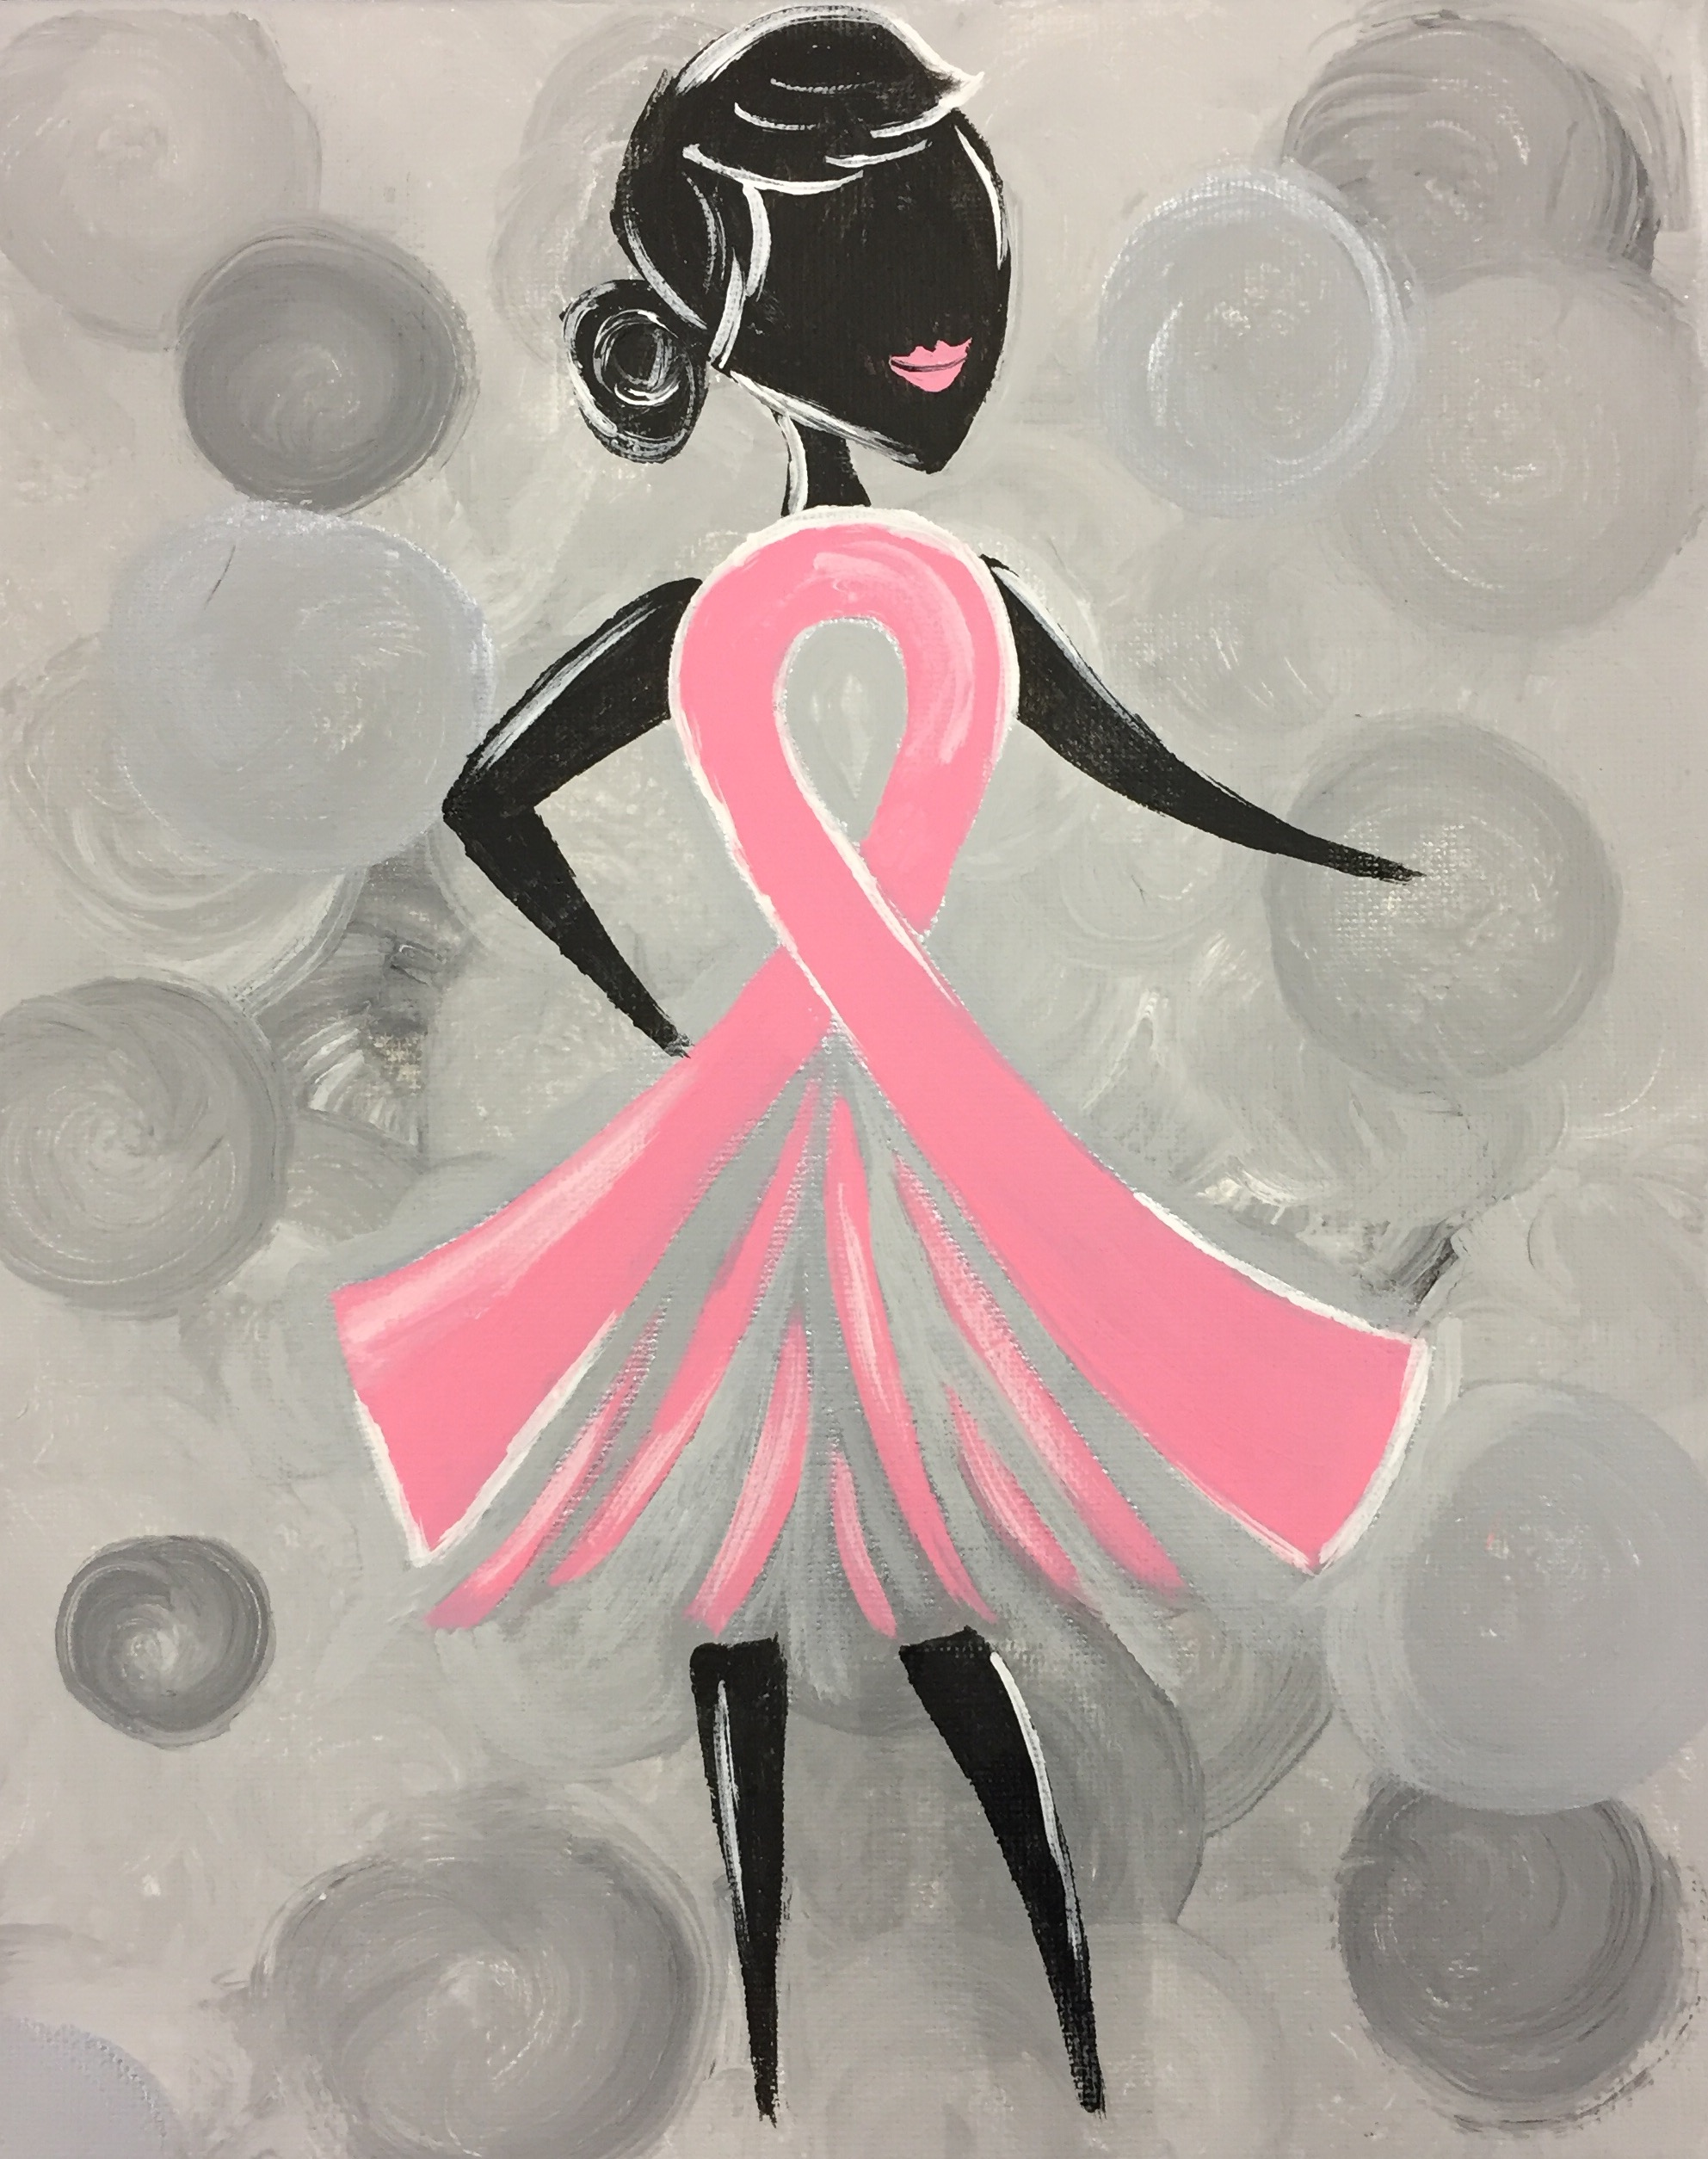 Paint this lovely lady with her poppin' pink ribbon and Pinot's Palette will donate $10 to the Susan G Komen Foundation!